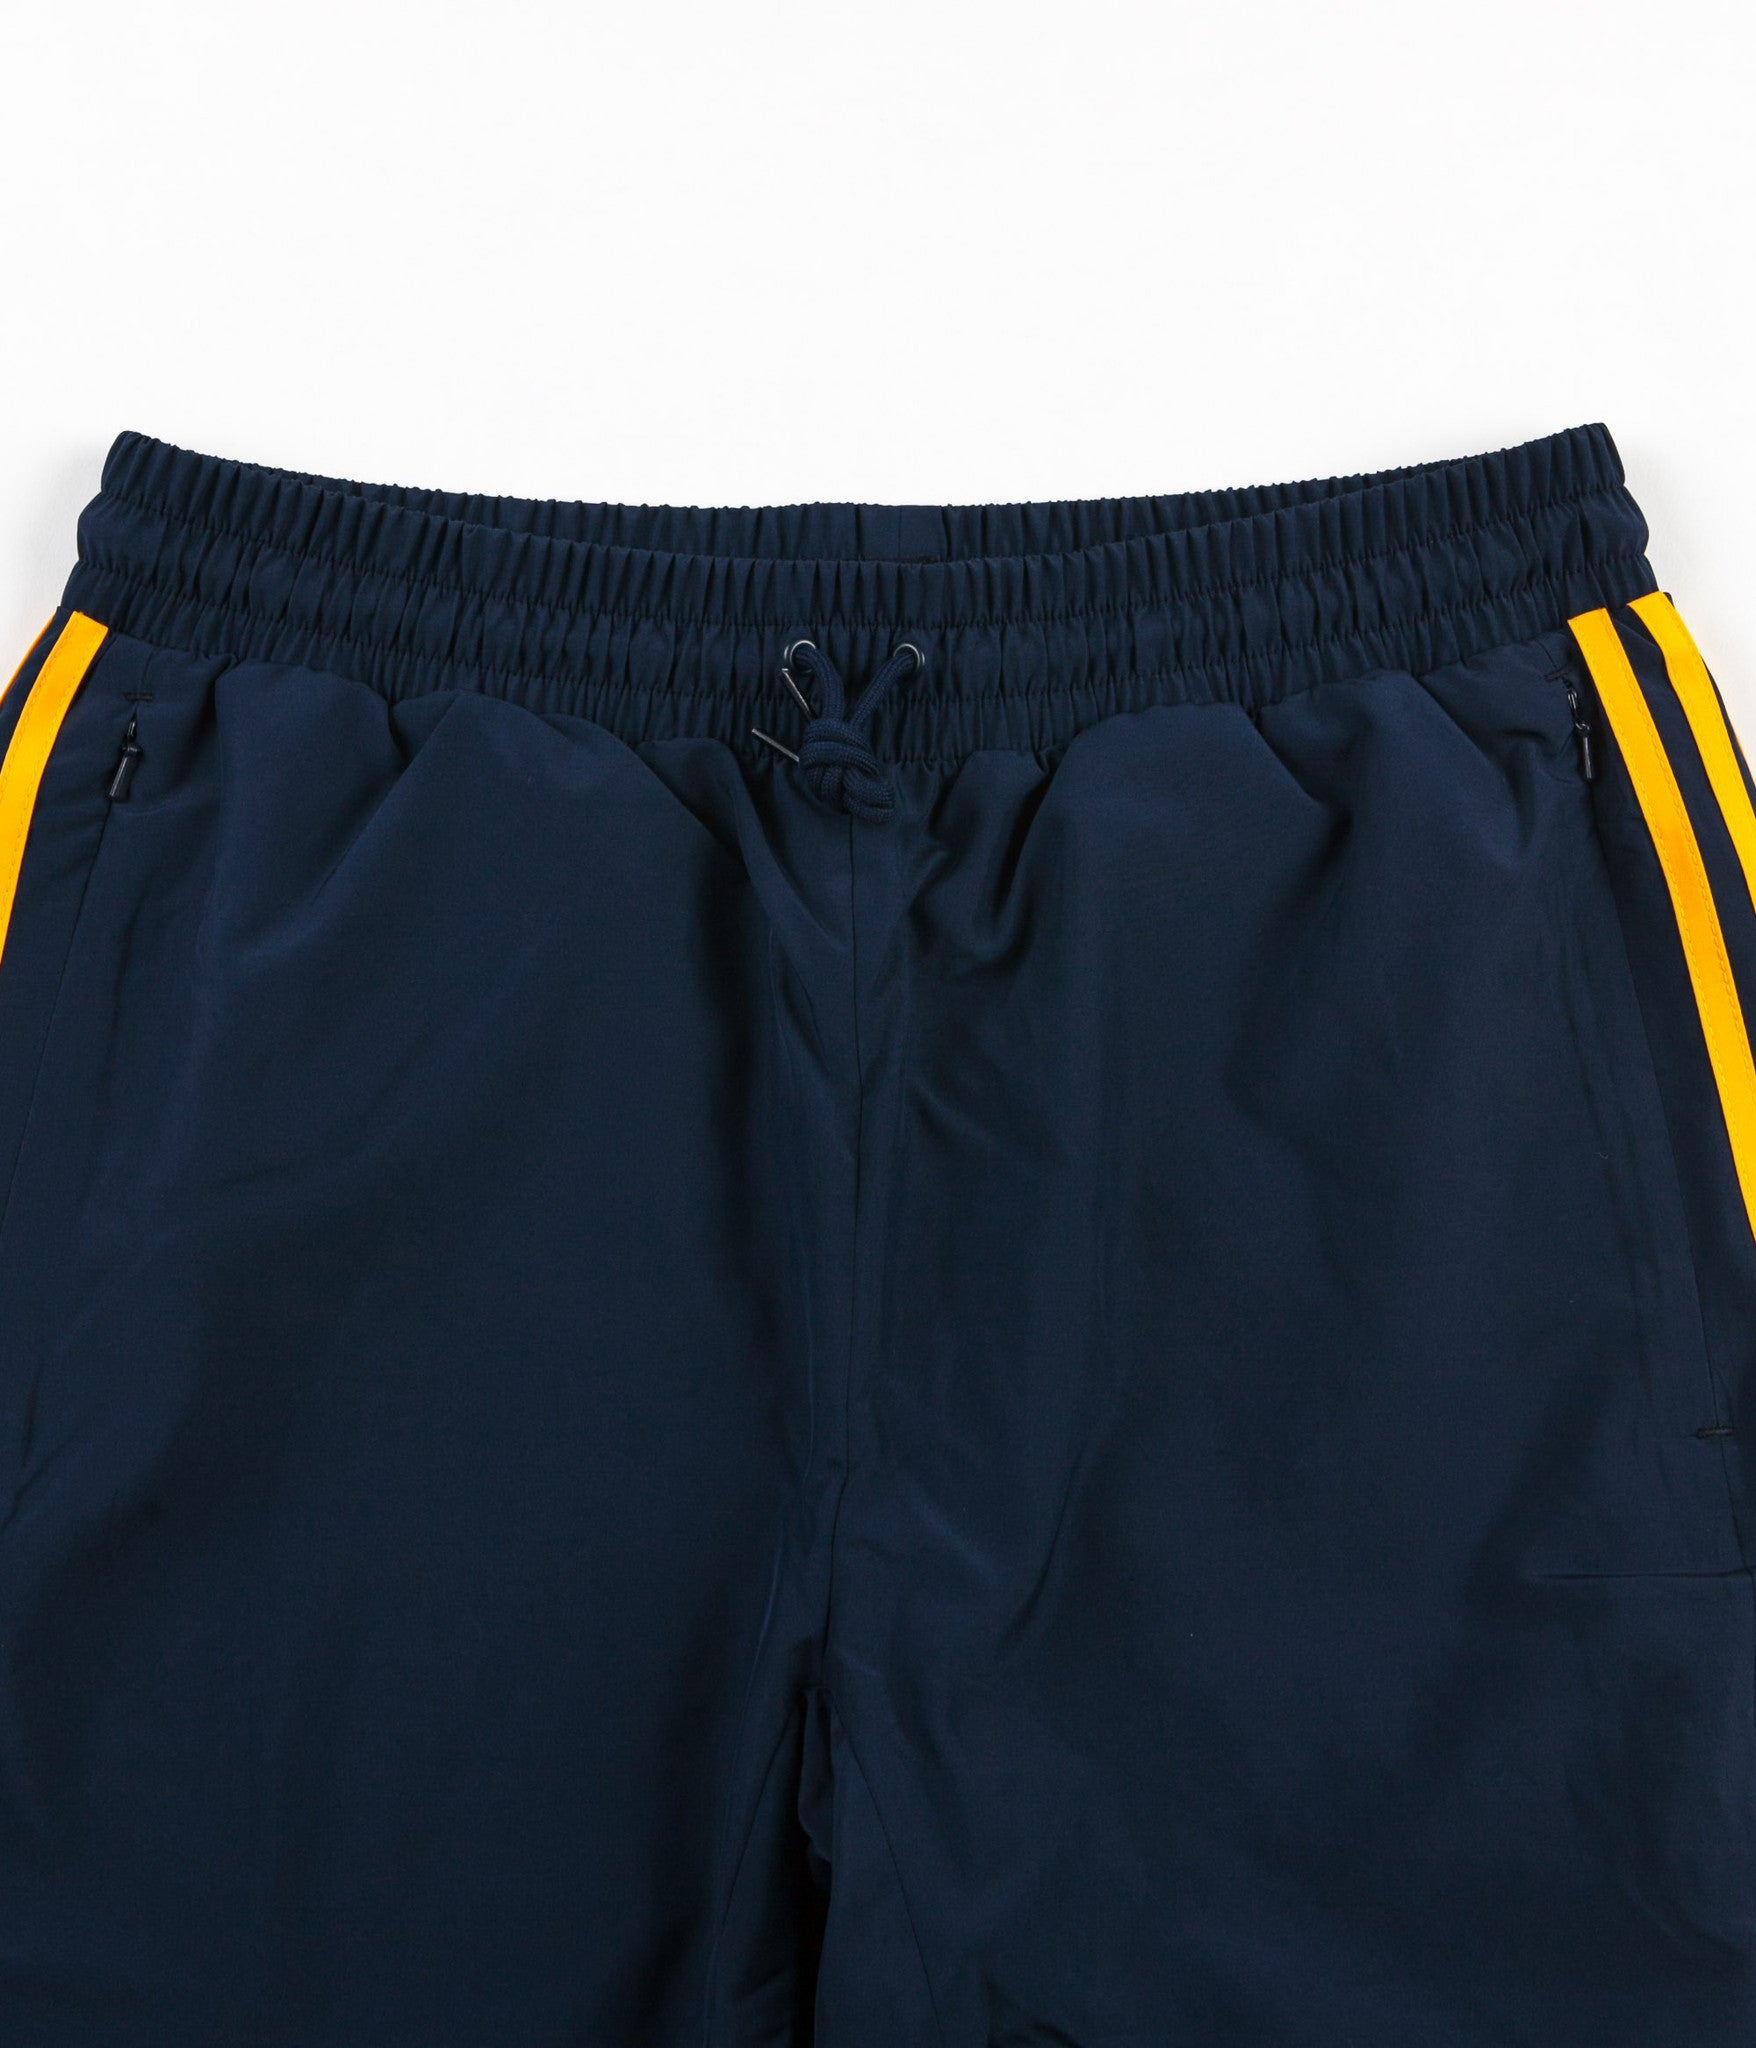 Adidas x Hardies Sweatpants - Collegiate Navy / Solar Yellow